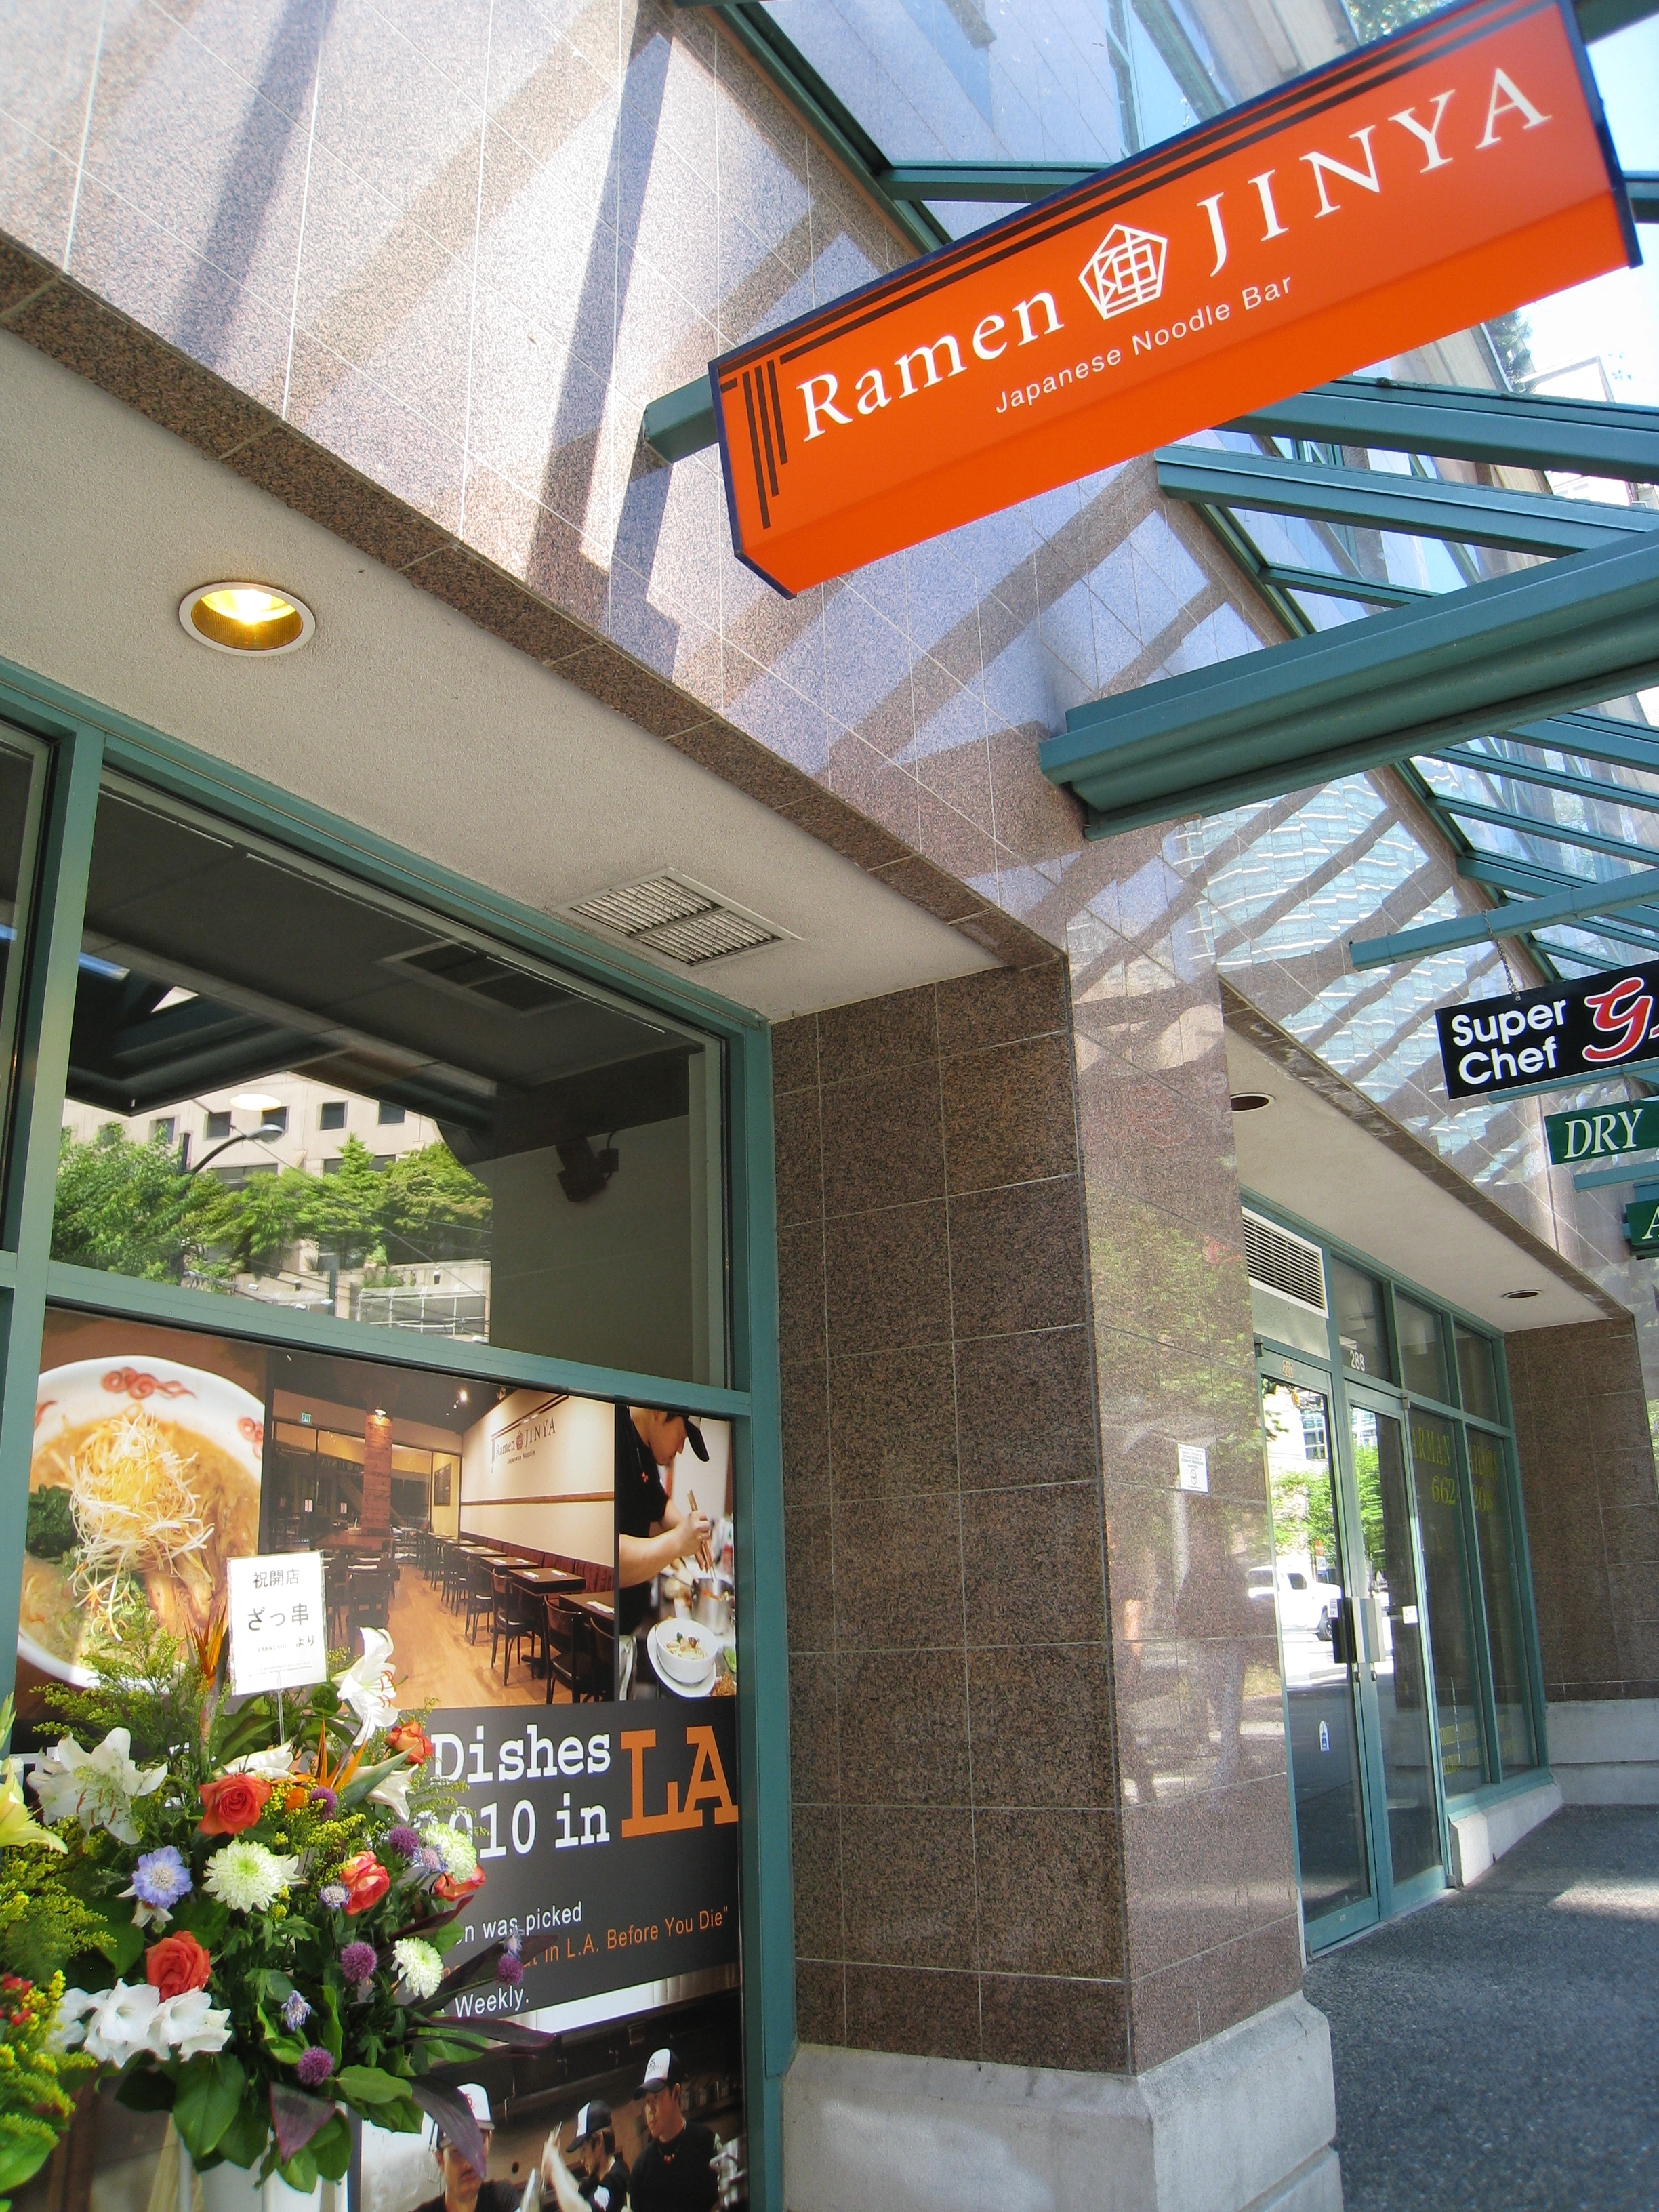 Food Punk Dylan S Candy Bar A Grown Up S Candy Store: Food Punk » Ramen Jinya: There Is A New Ramen Joint In Town